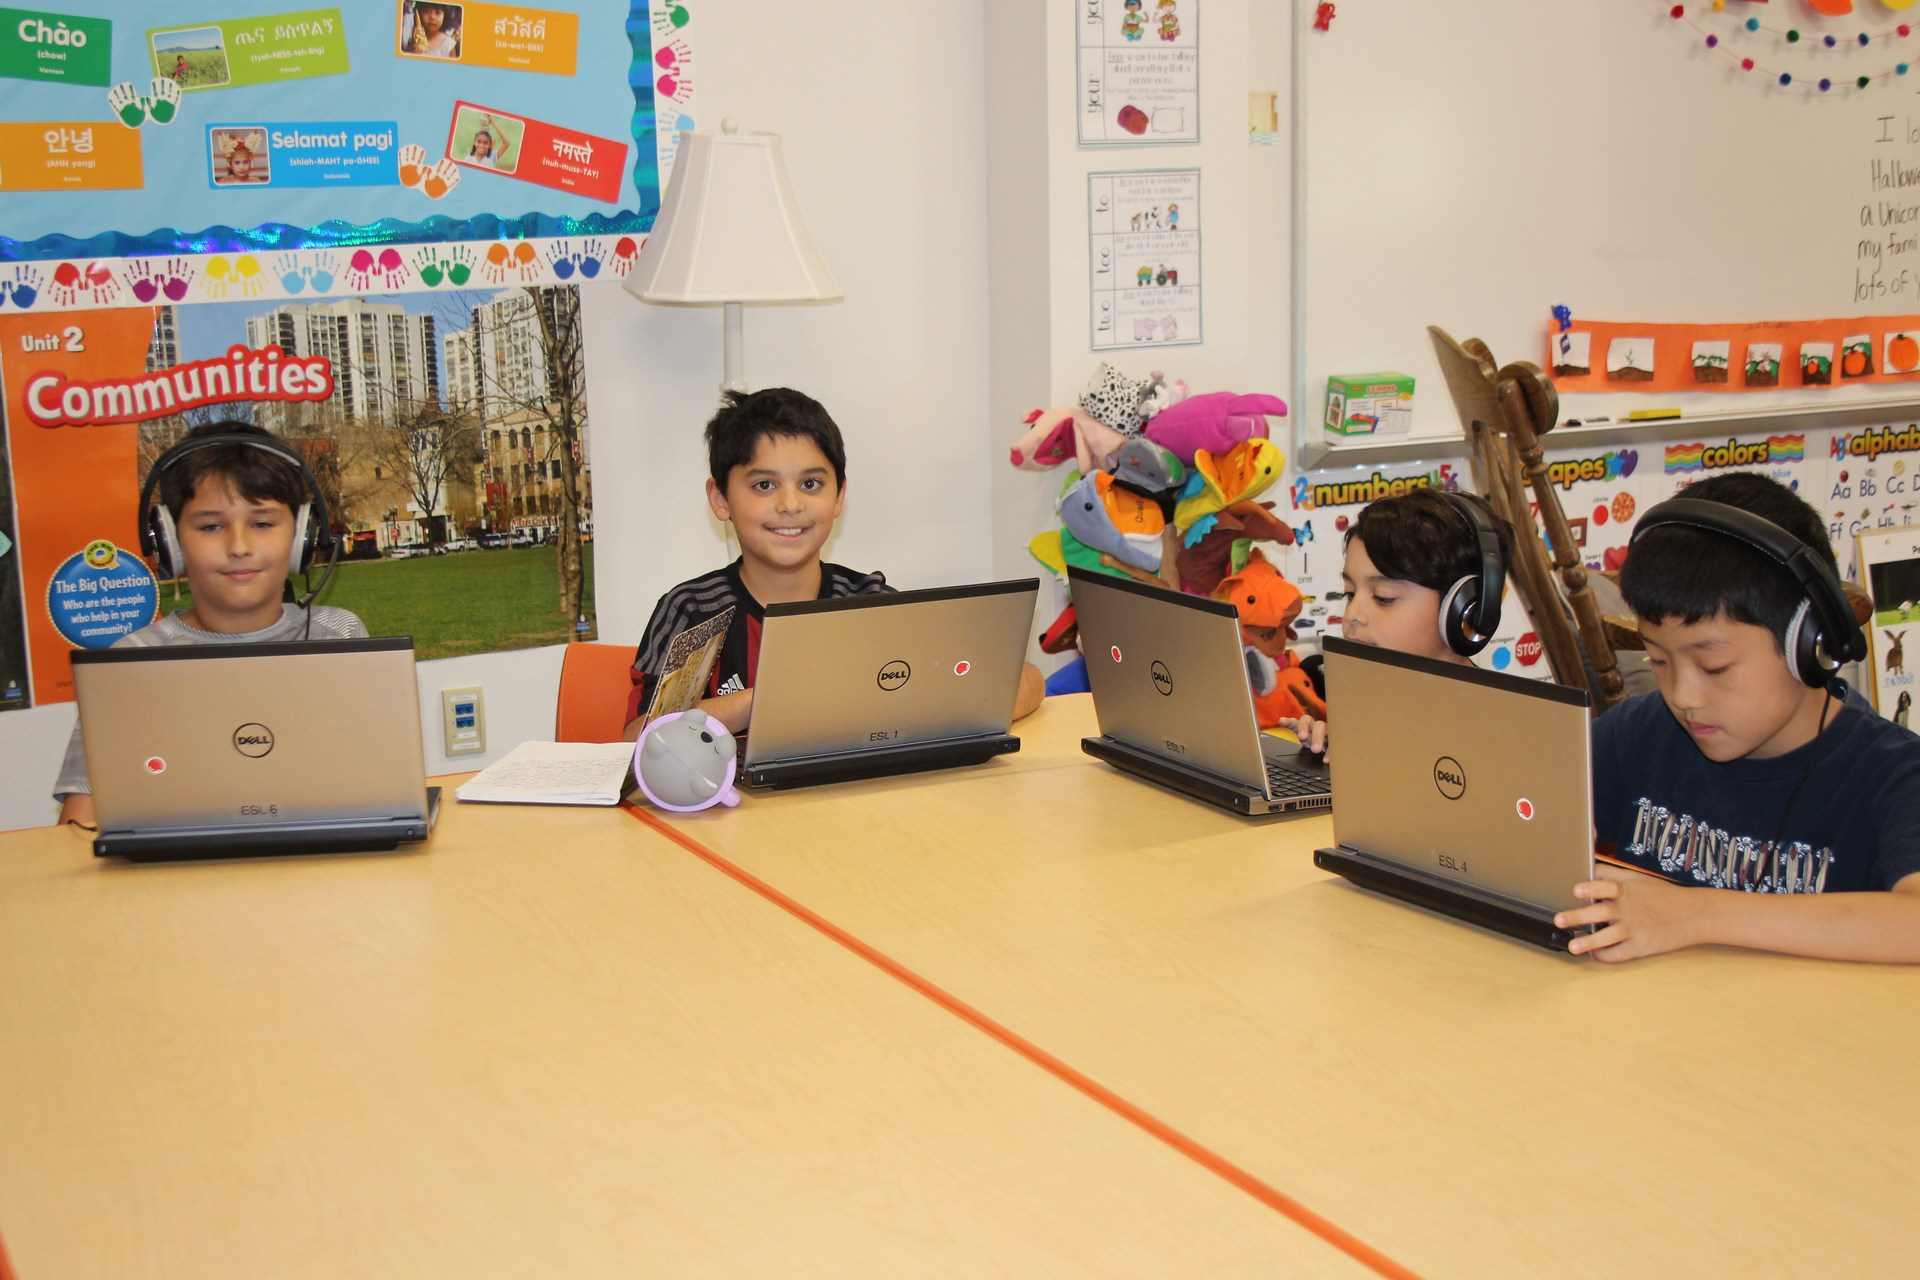 Four students work with computers and headsets during their lessons.